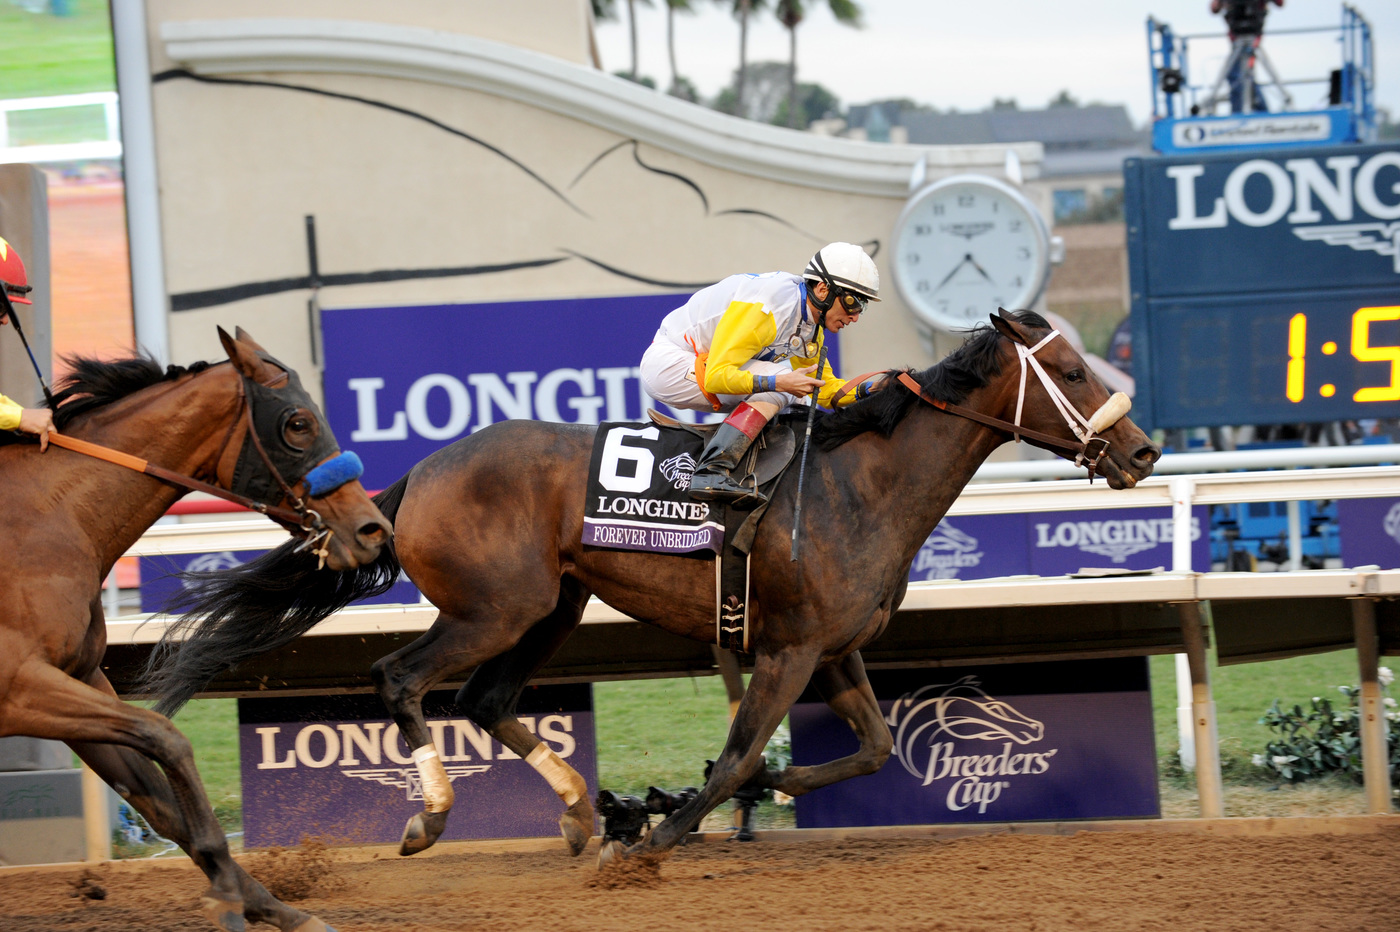 Longines Flat Racing Event: Swiss Watch Brand Longines Times 2017 Breeders' Cup World Championships at Del Mar 6